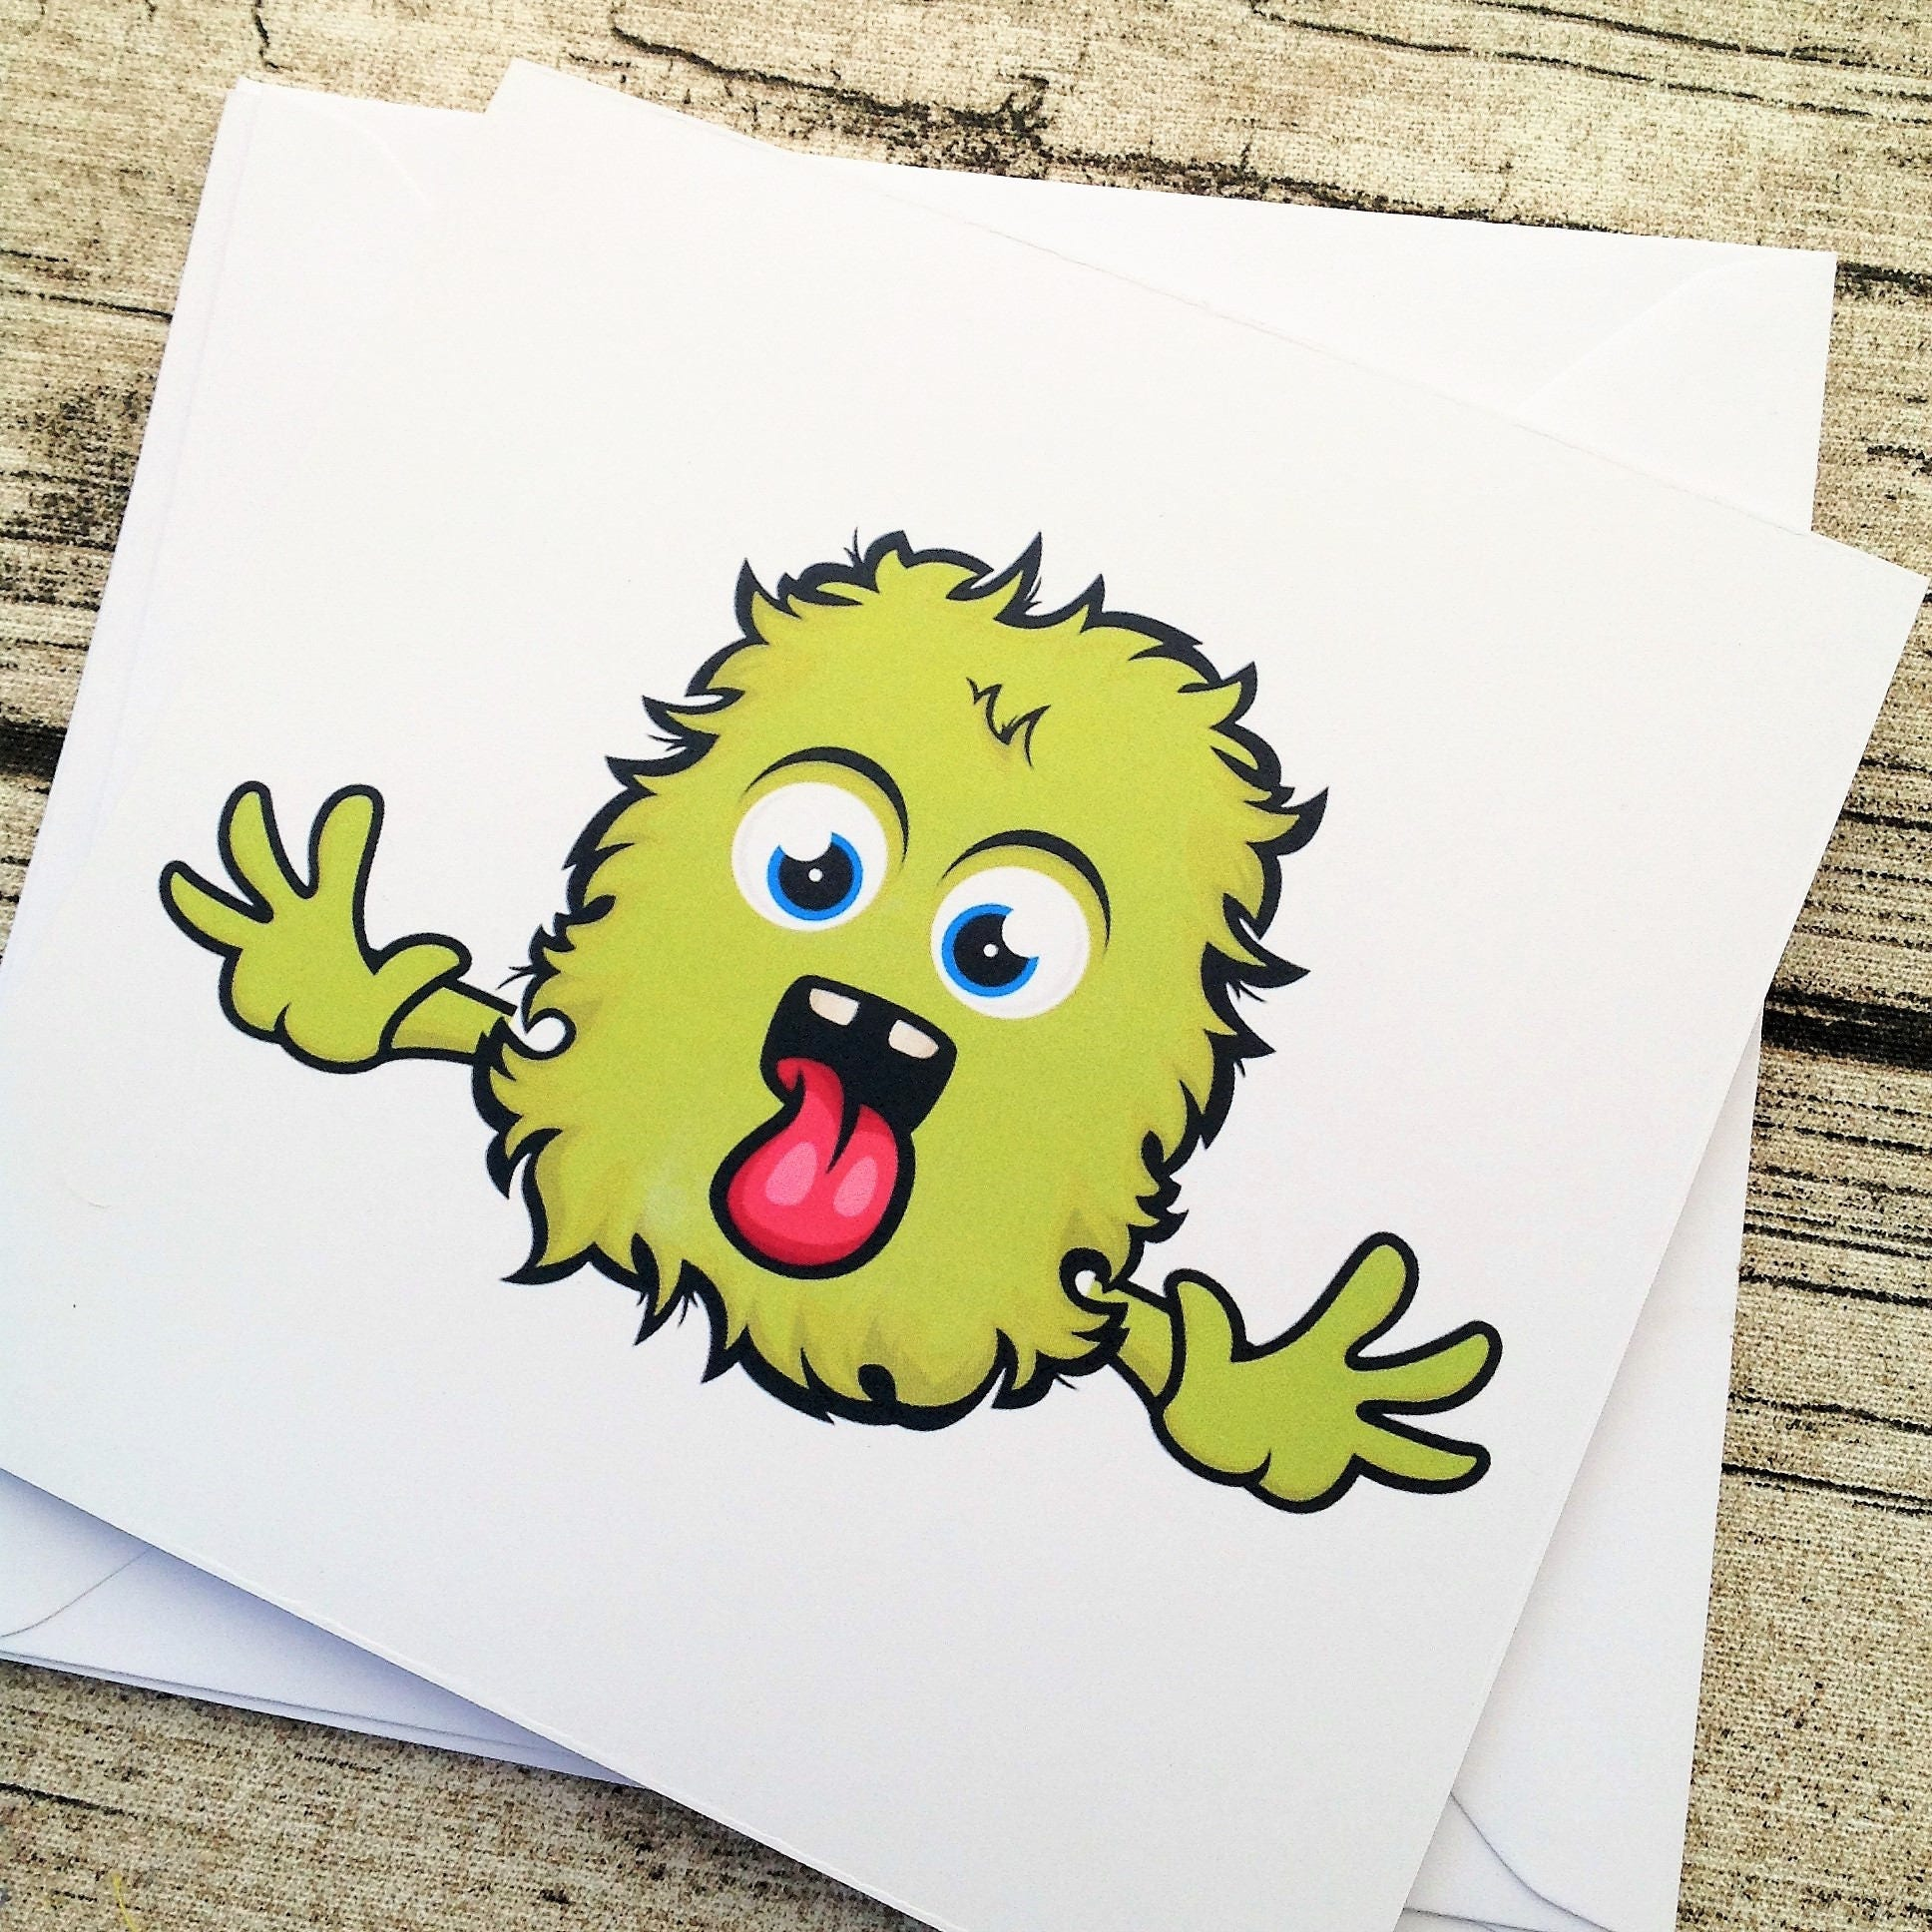 Handmade Greeting Cards Greeting Cards Cards Funny Halloween Cute